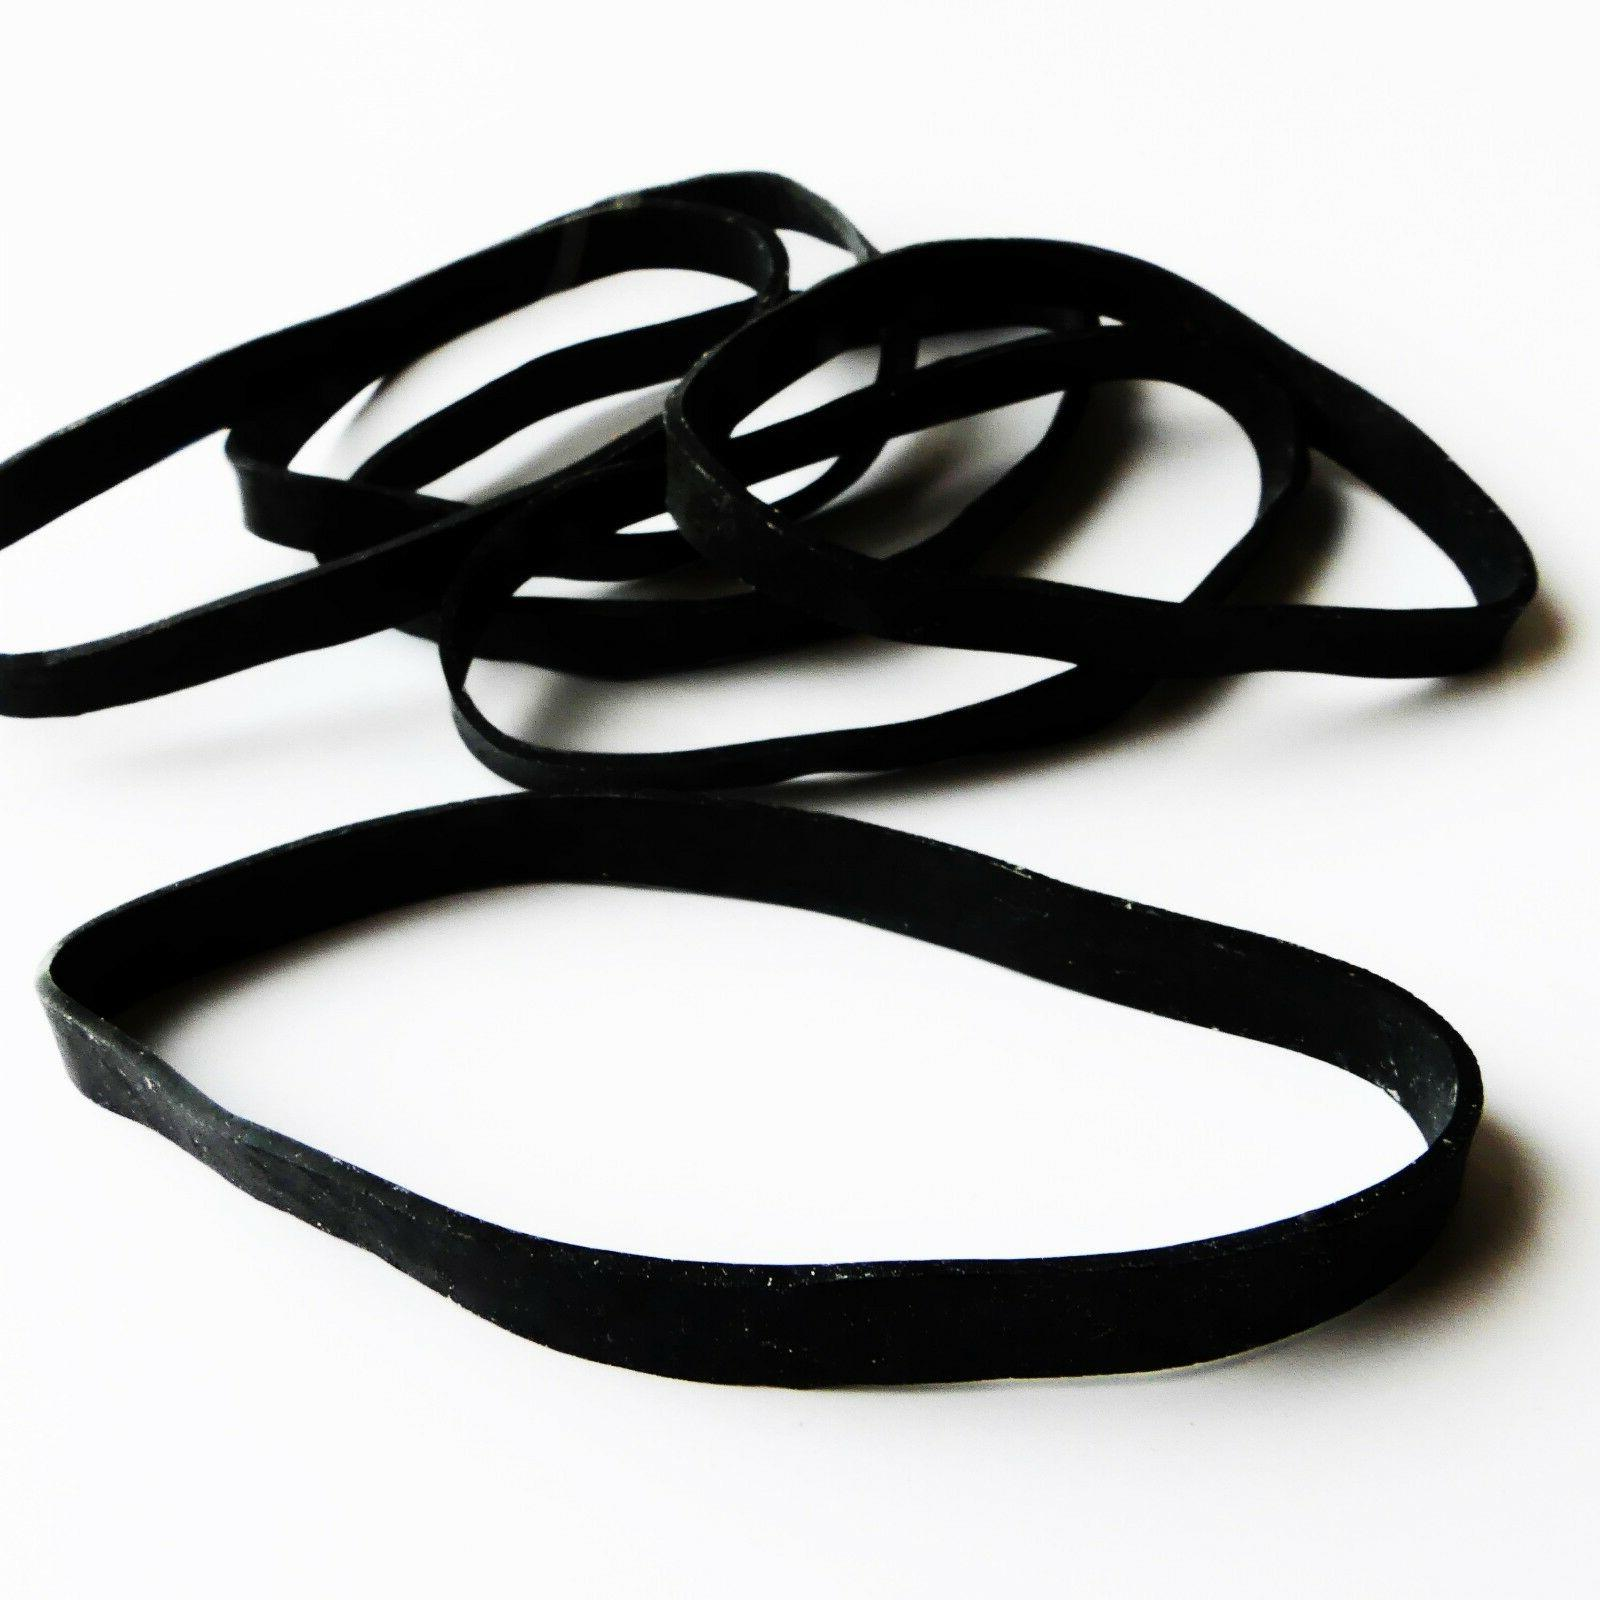 HEAVY-DUTY LARGE BLACK RUBBER BANDS | Resist the Elements